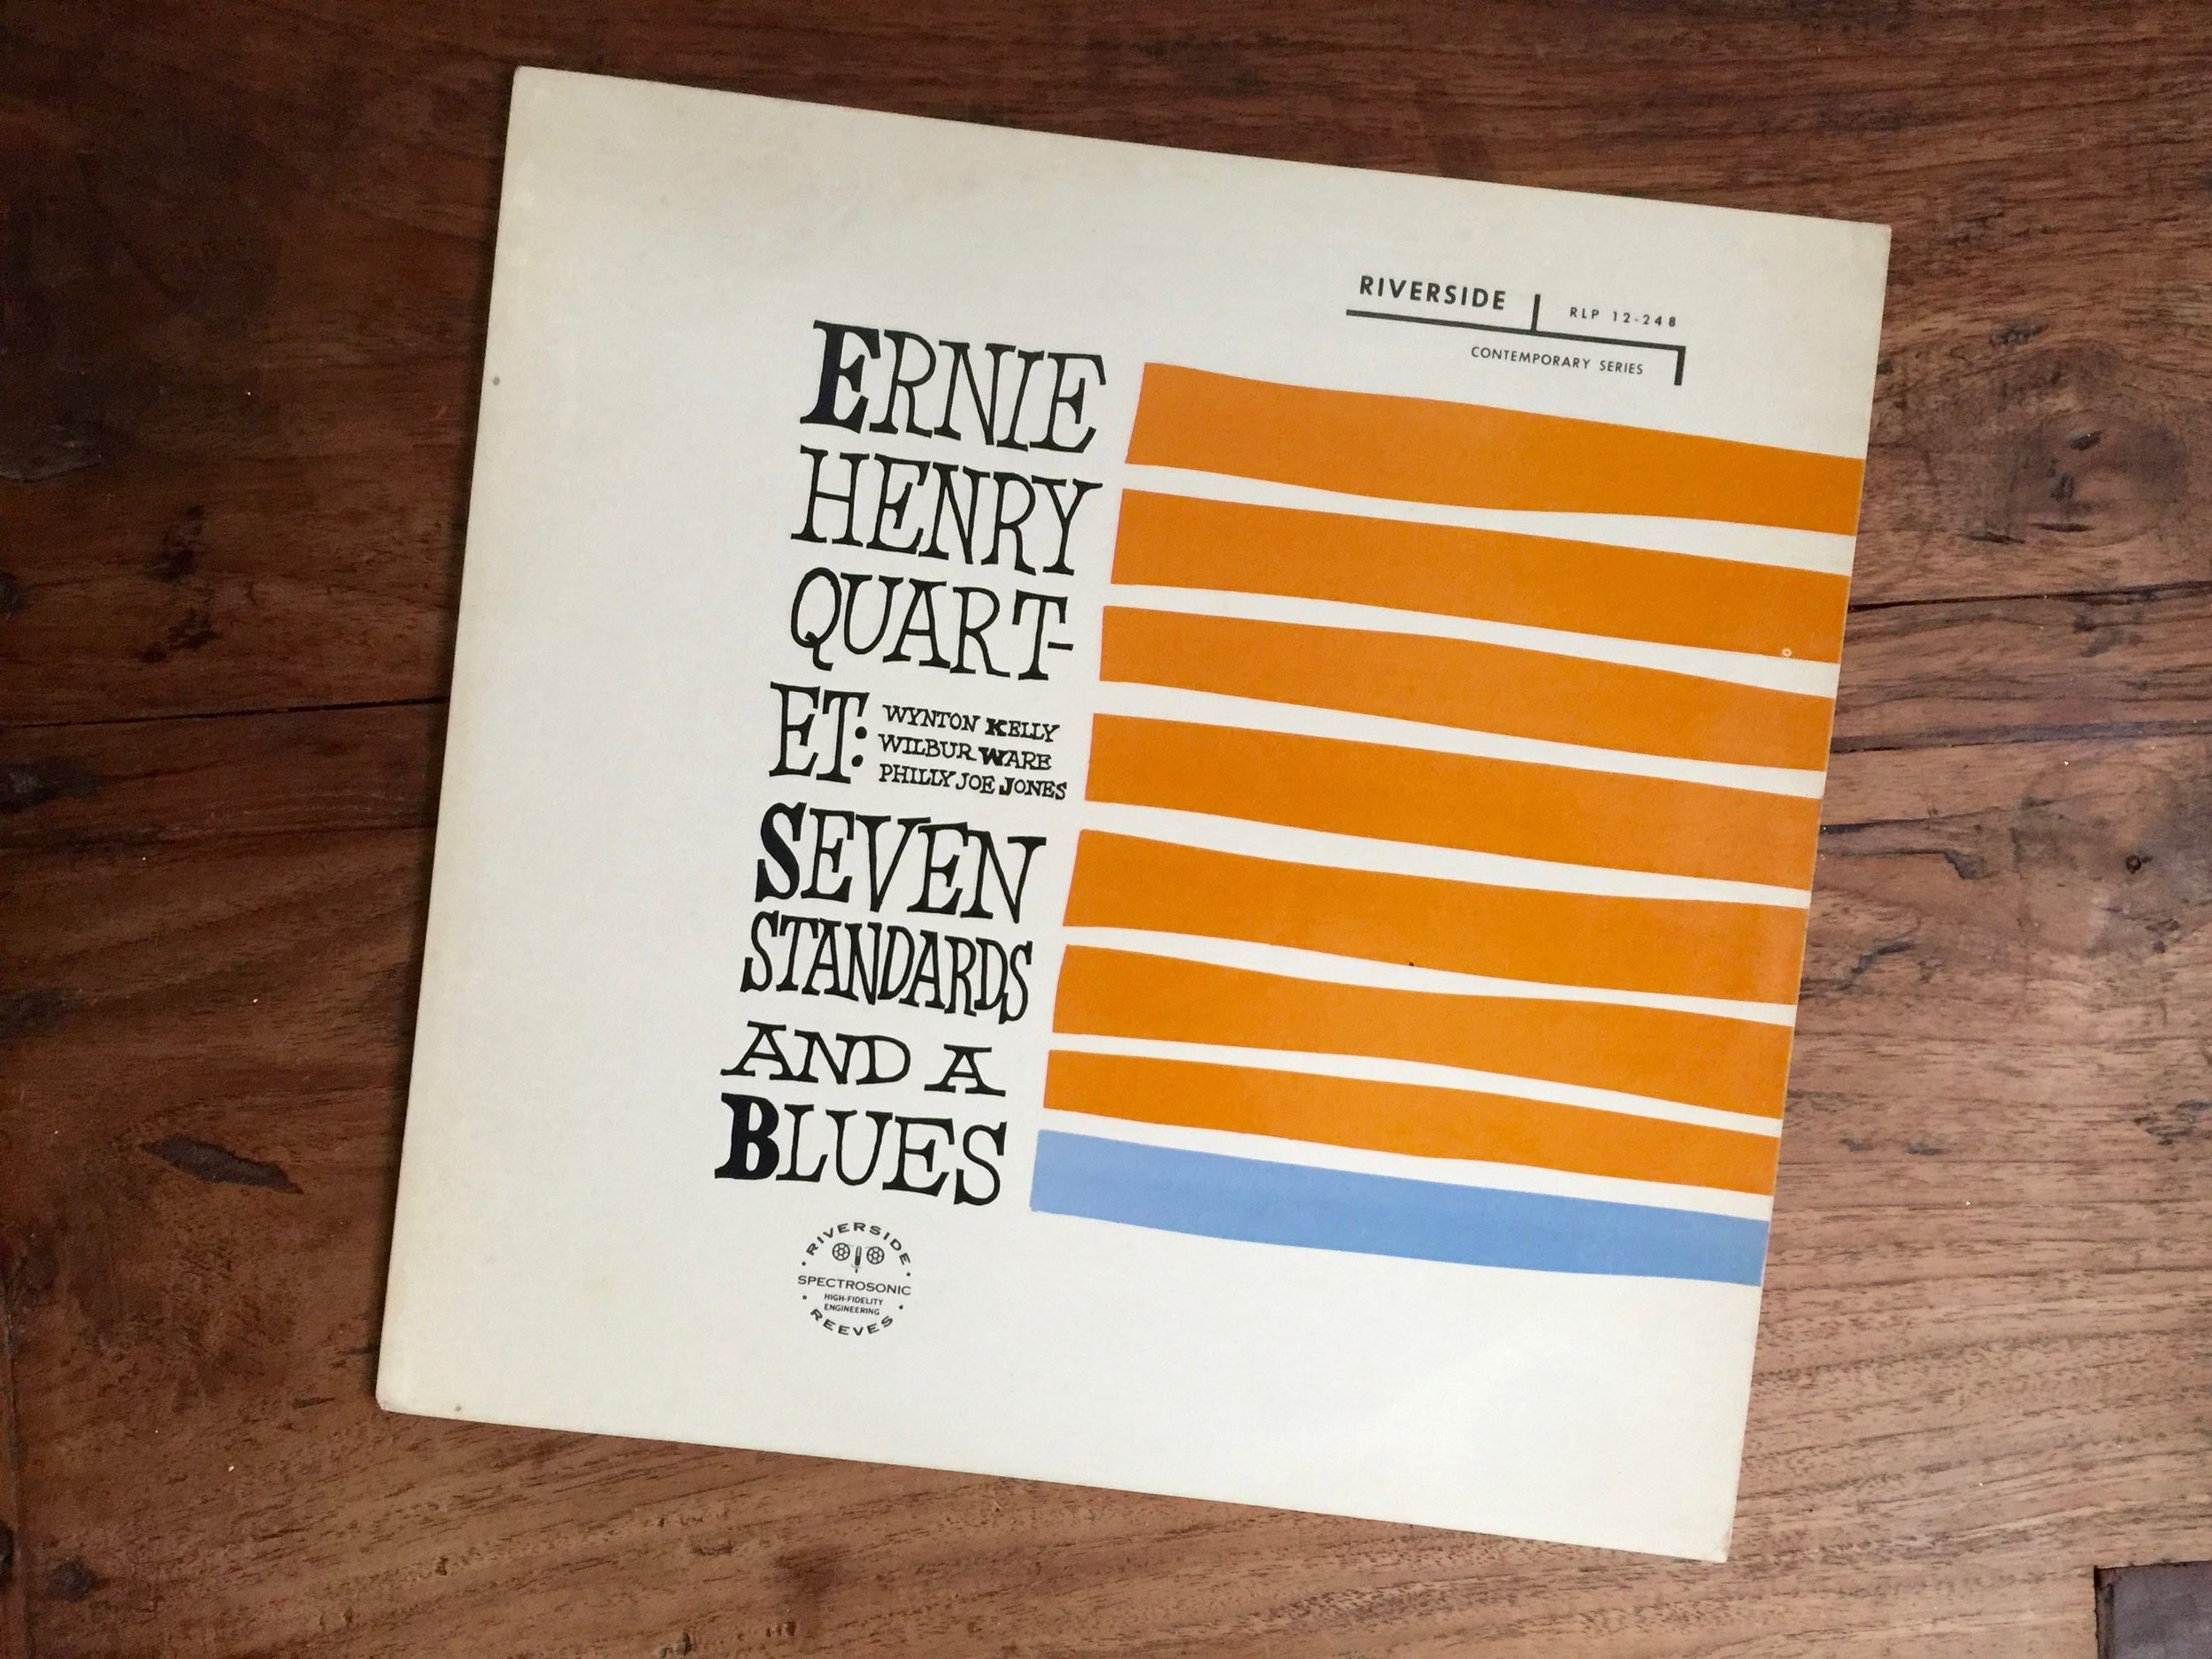 Another Ernie Henry masterpiece... he had a sound of his own.